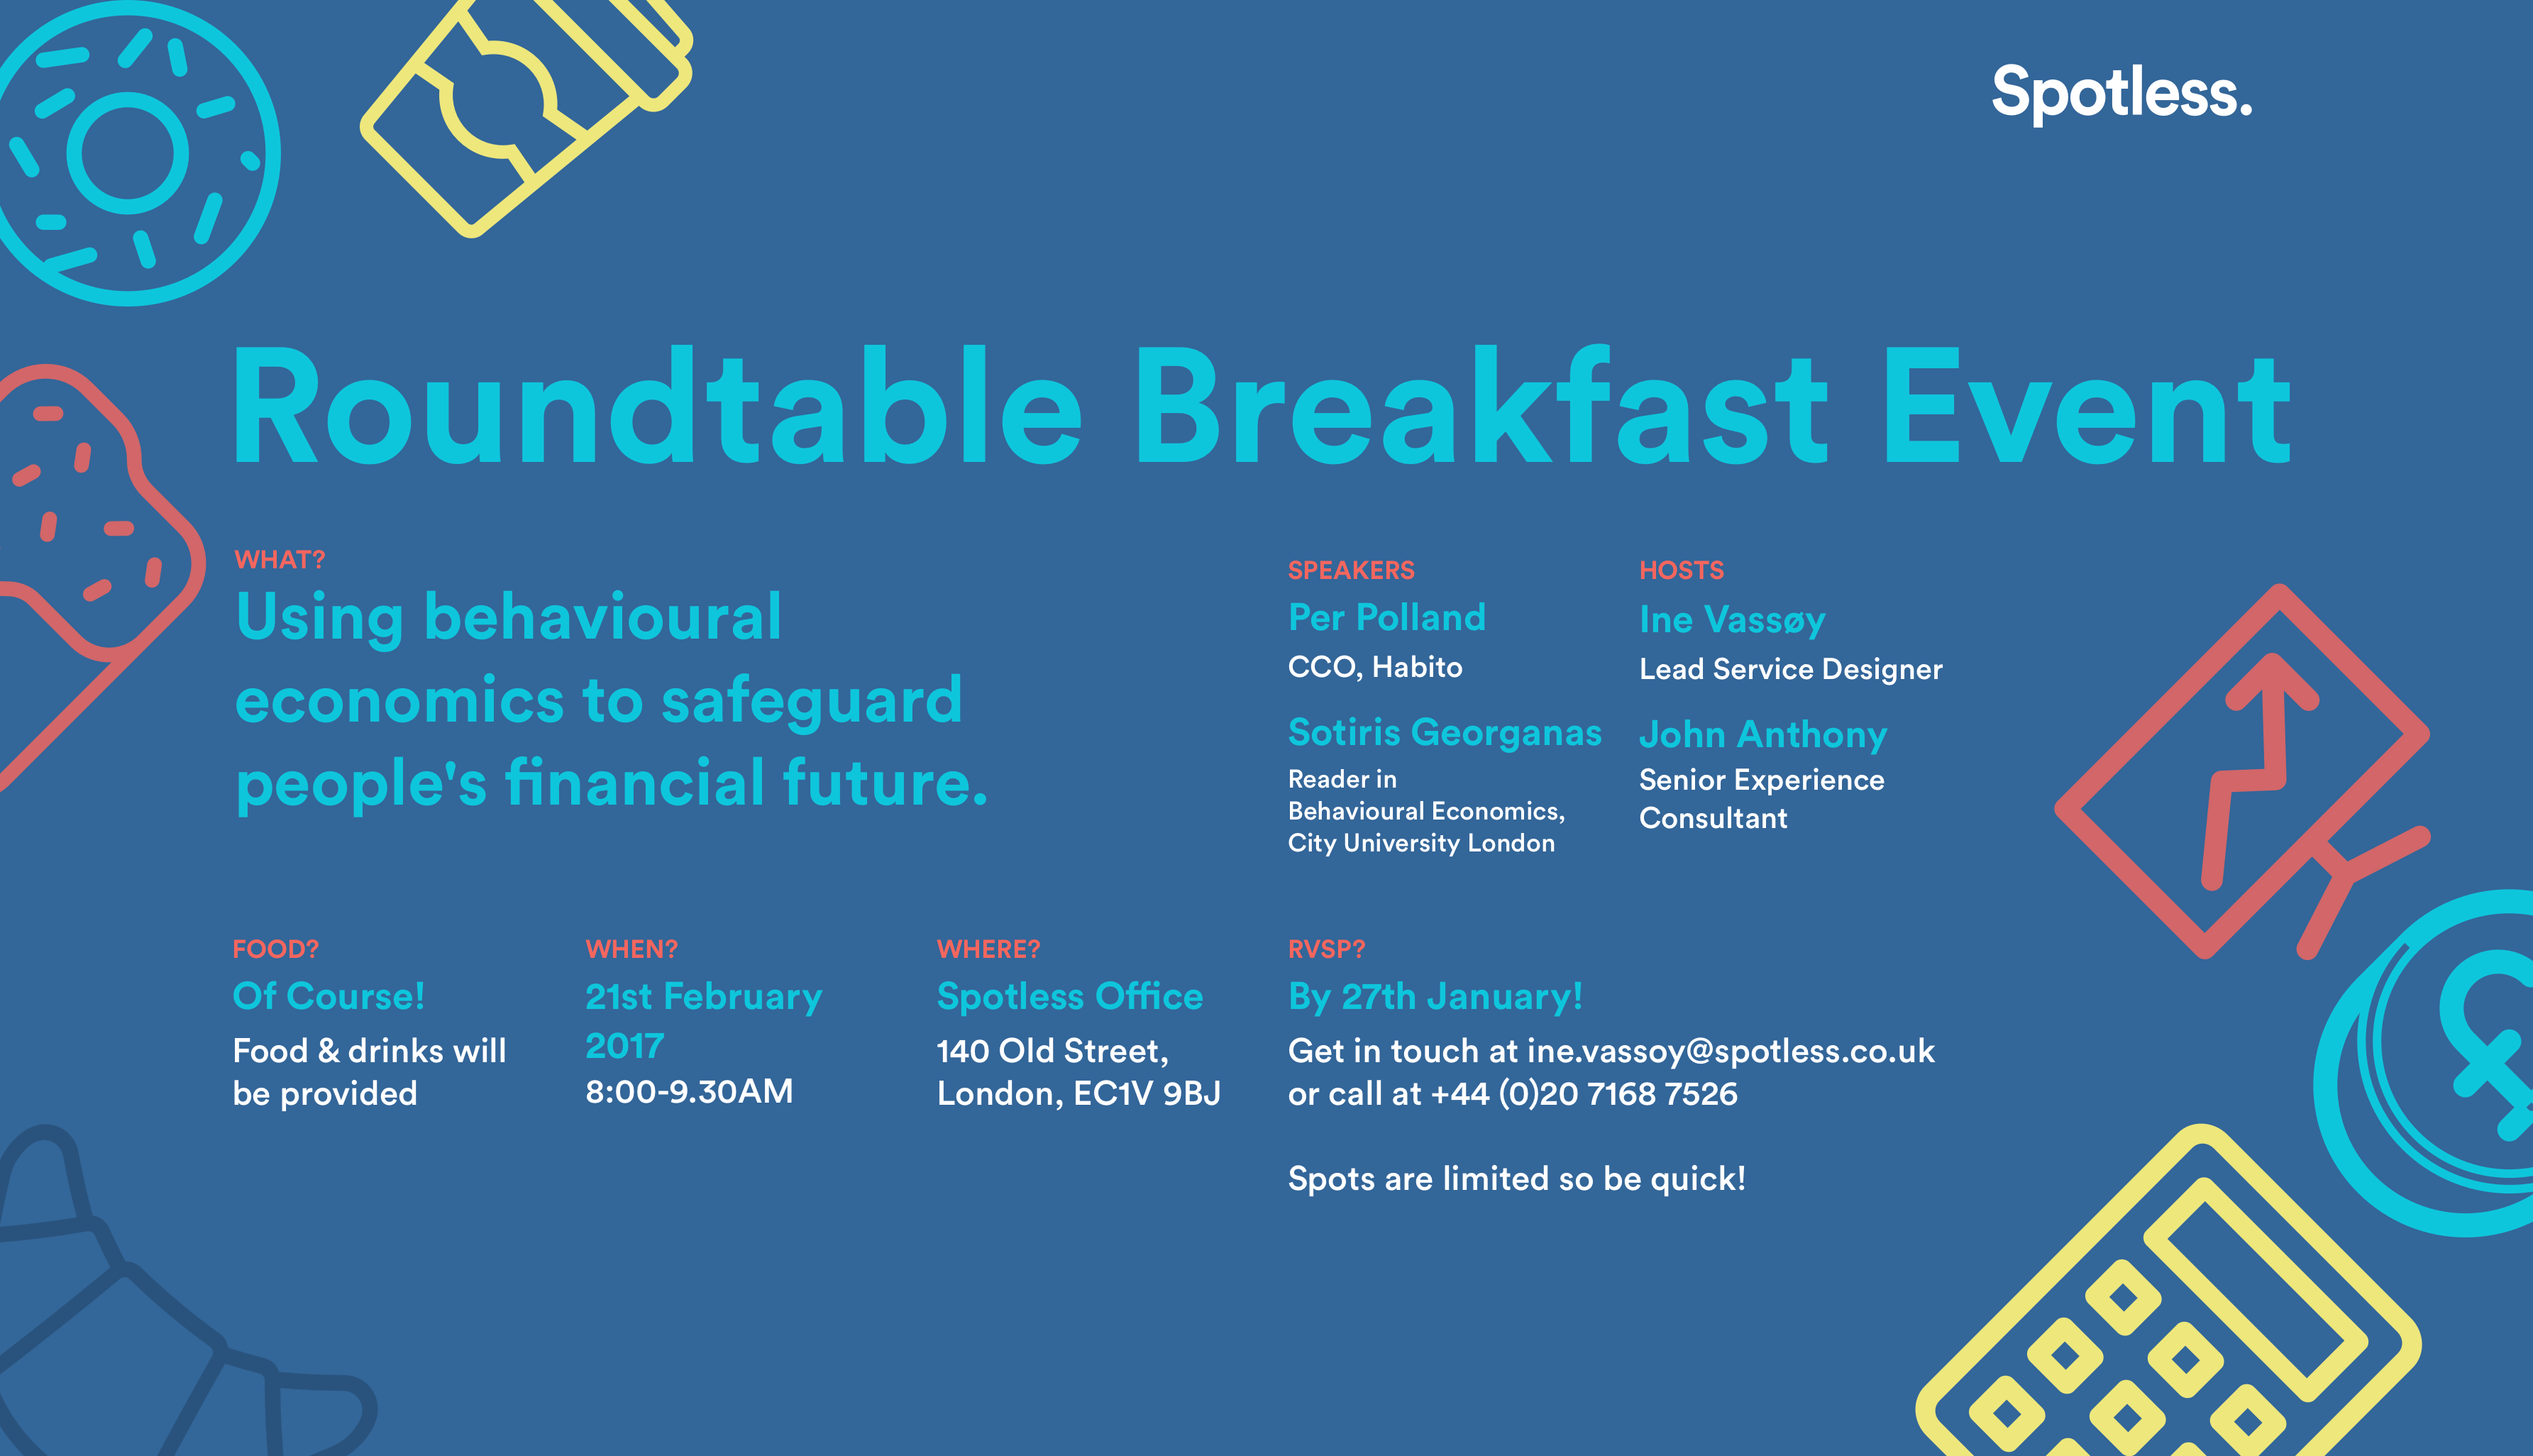 roundtable-breakfast-event-02